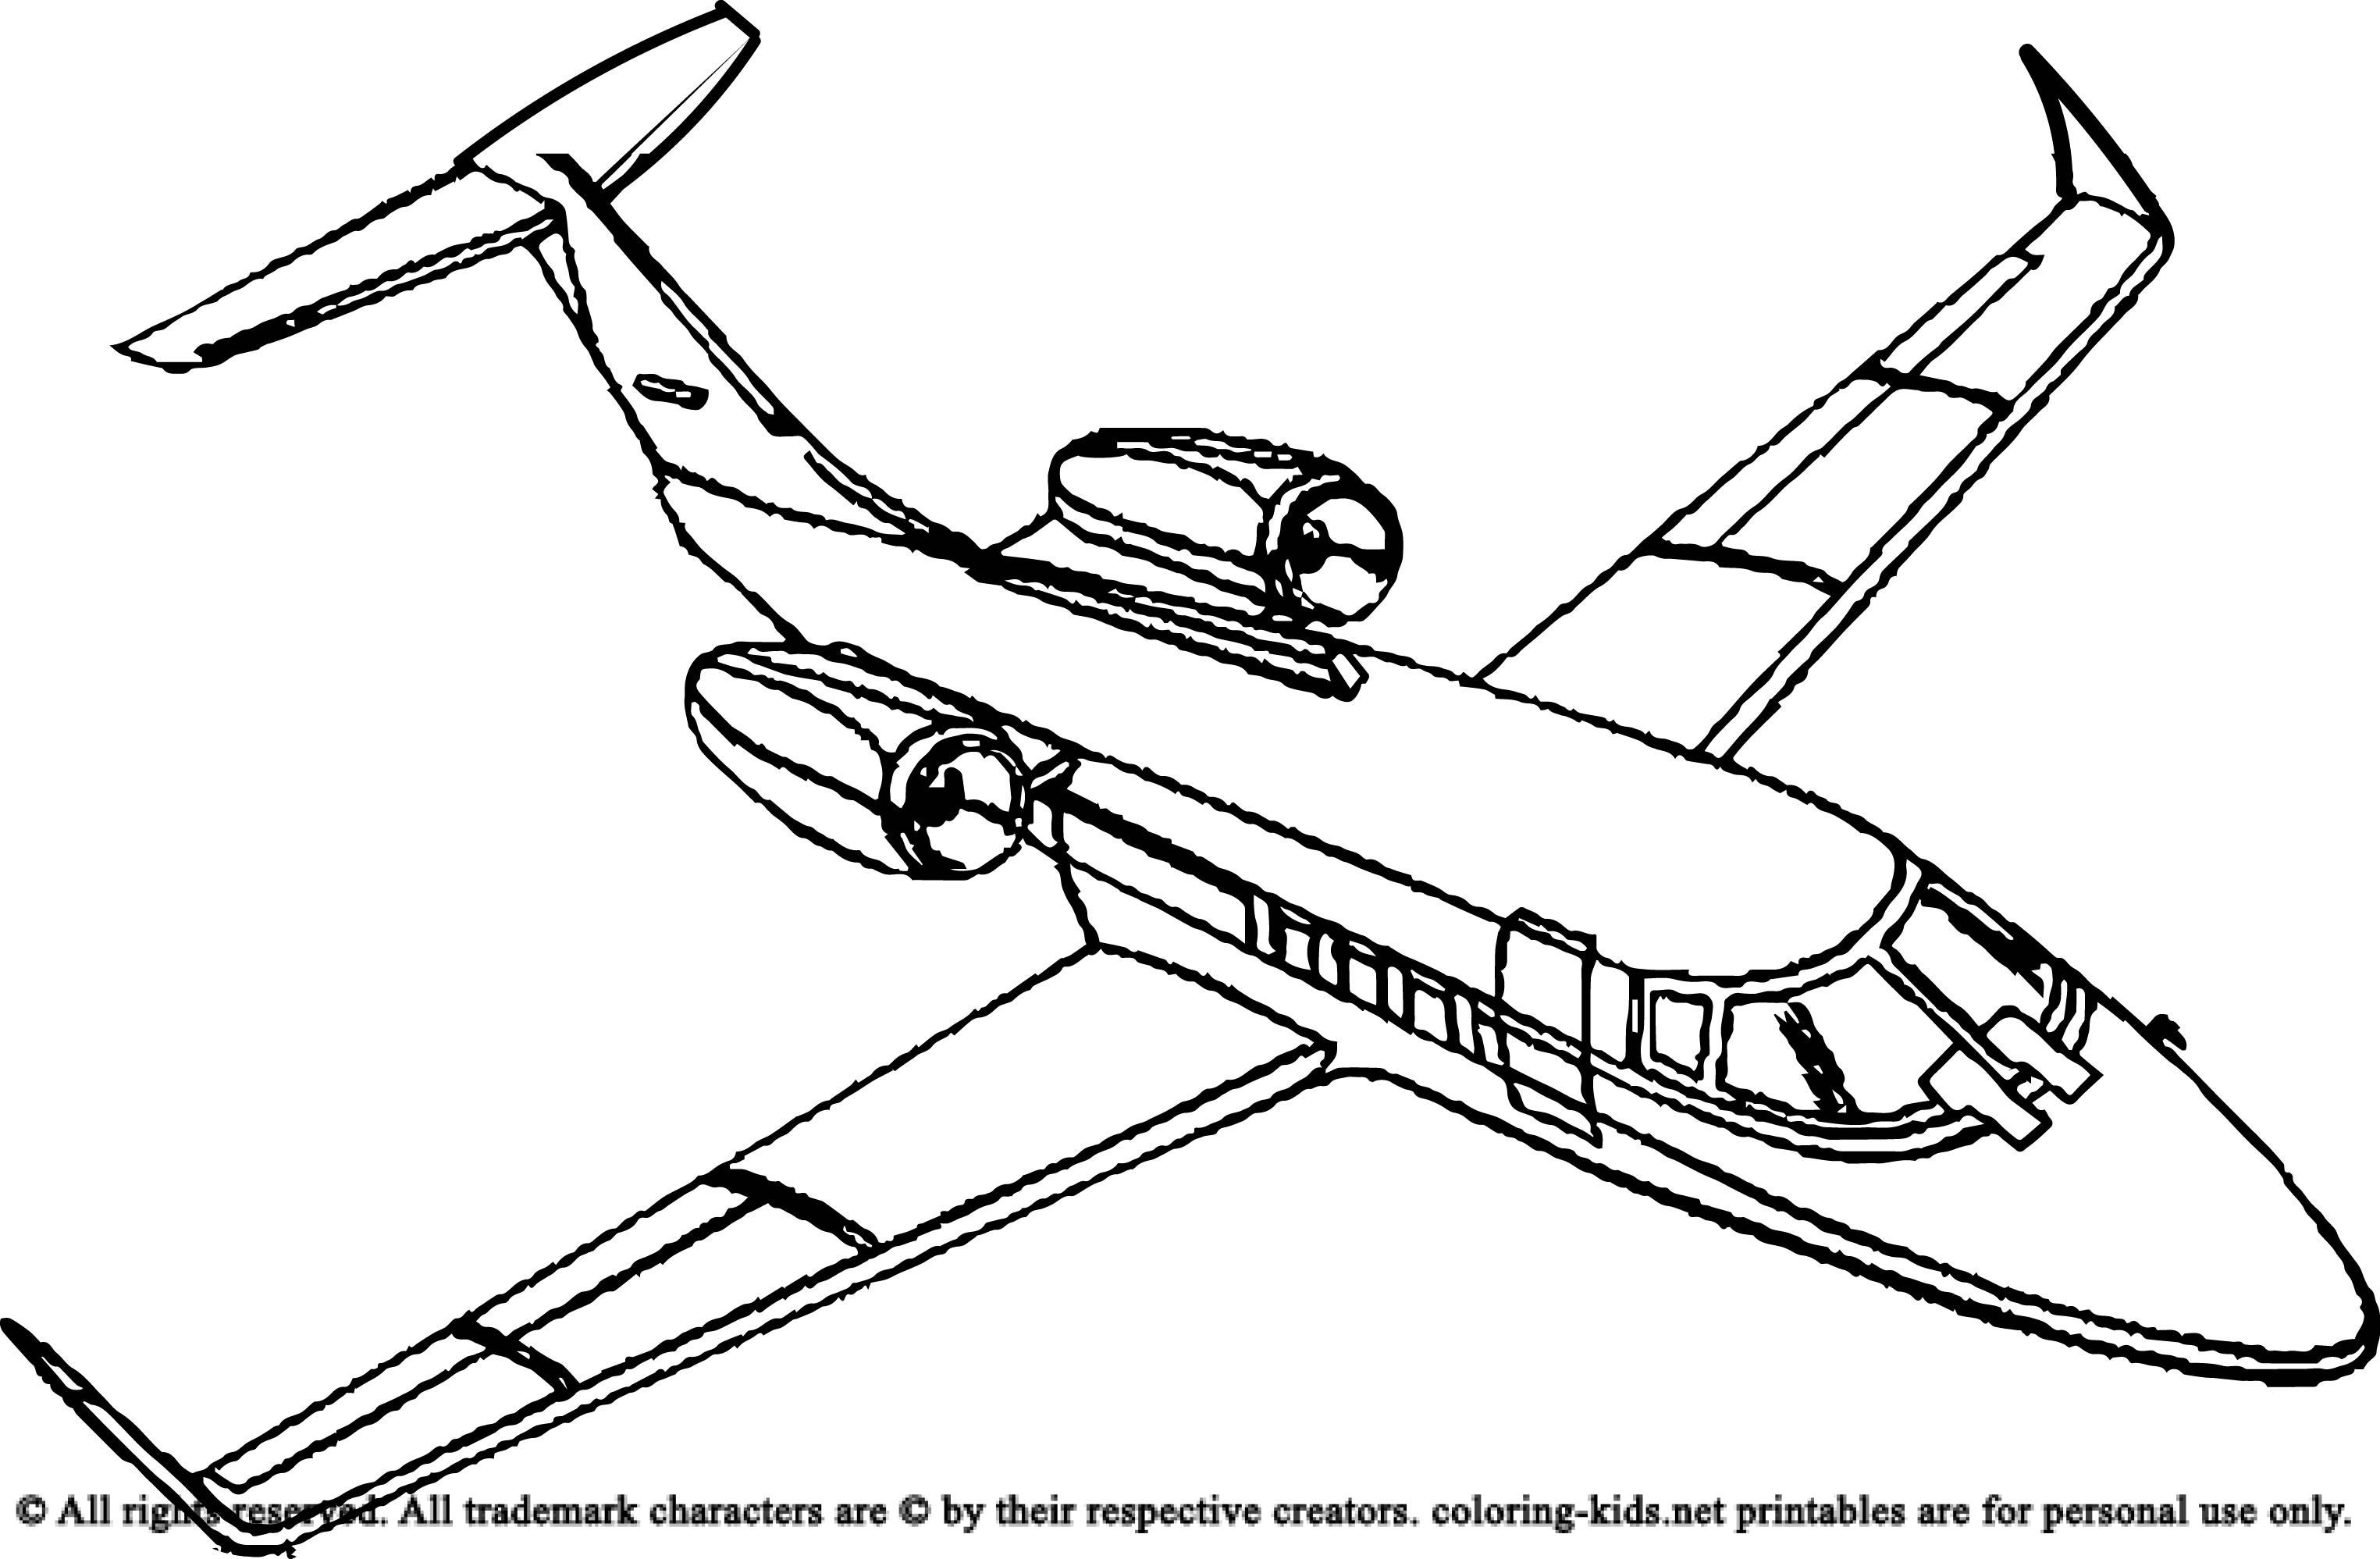 3049x1997 Awesome Collection Of Attack Helicopter Coloring Pages